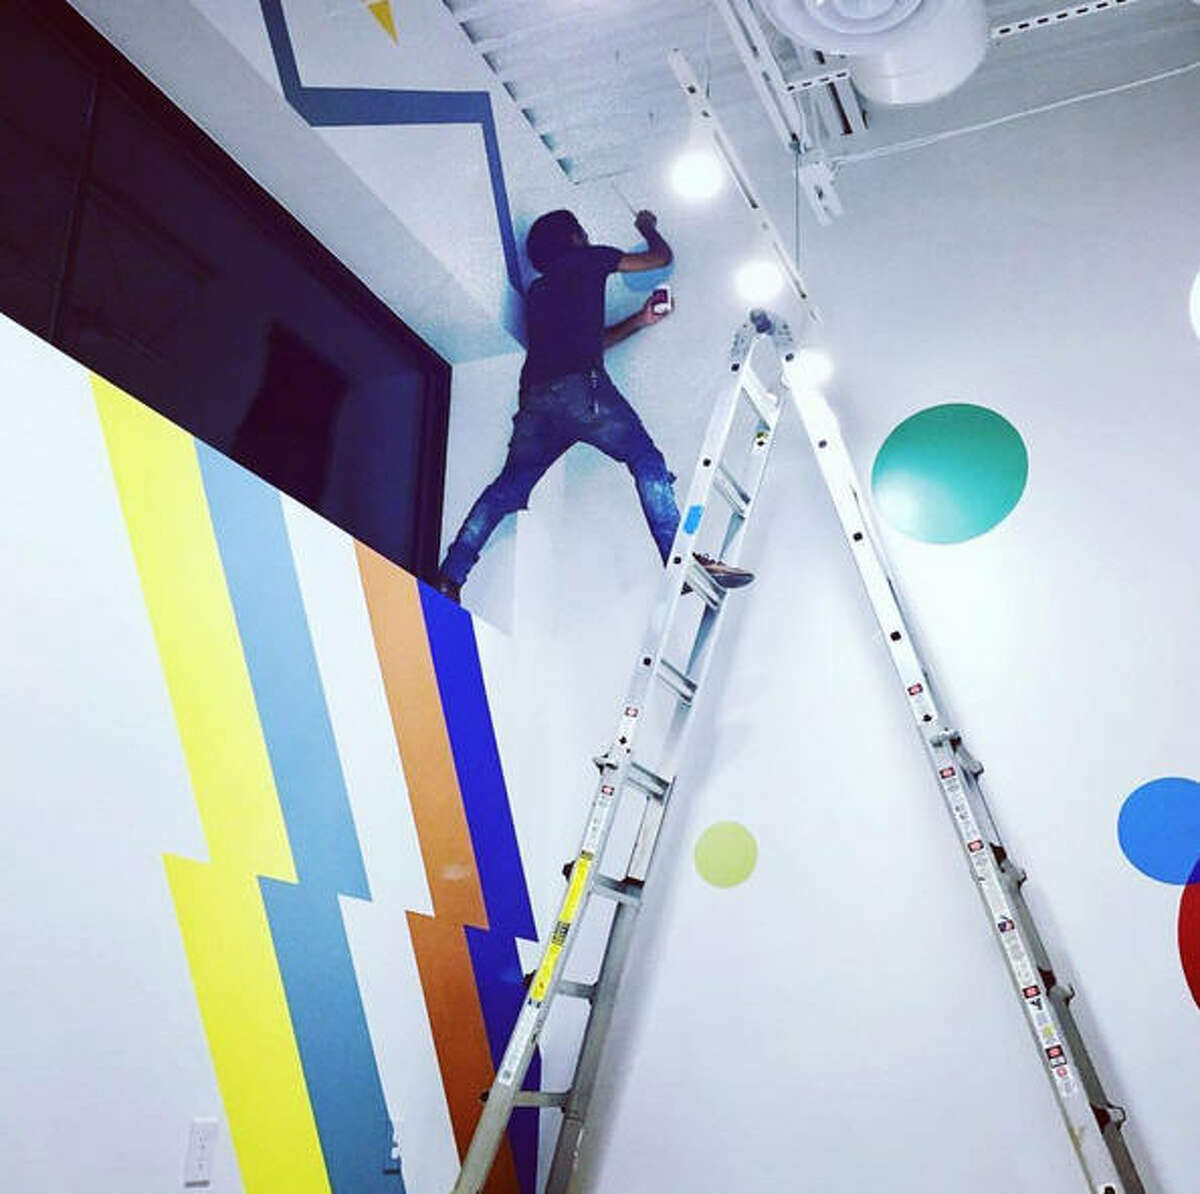 Birds is also known for its distinctive exterior and interior design work at each location, including murals inside and out. The Heights location is covered in vibrant dots, courtesy of Dandee Warhol at War'Hous Visual Studios.